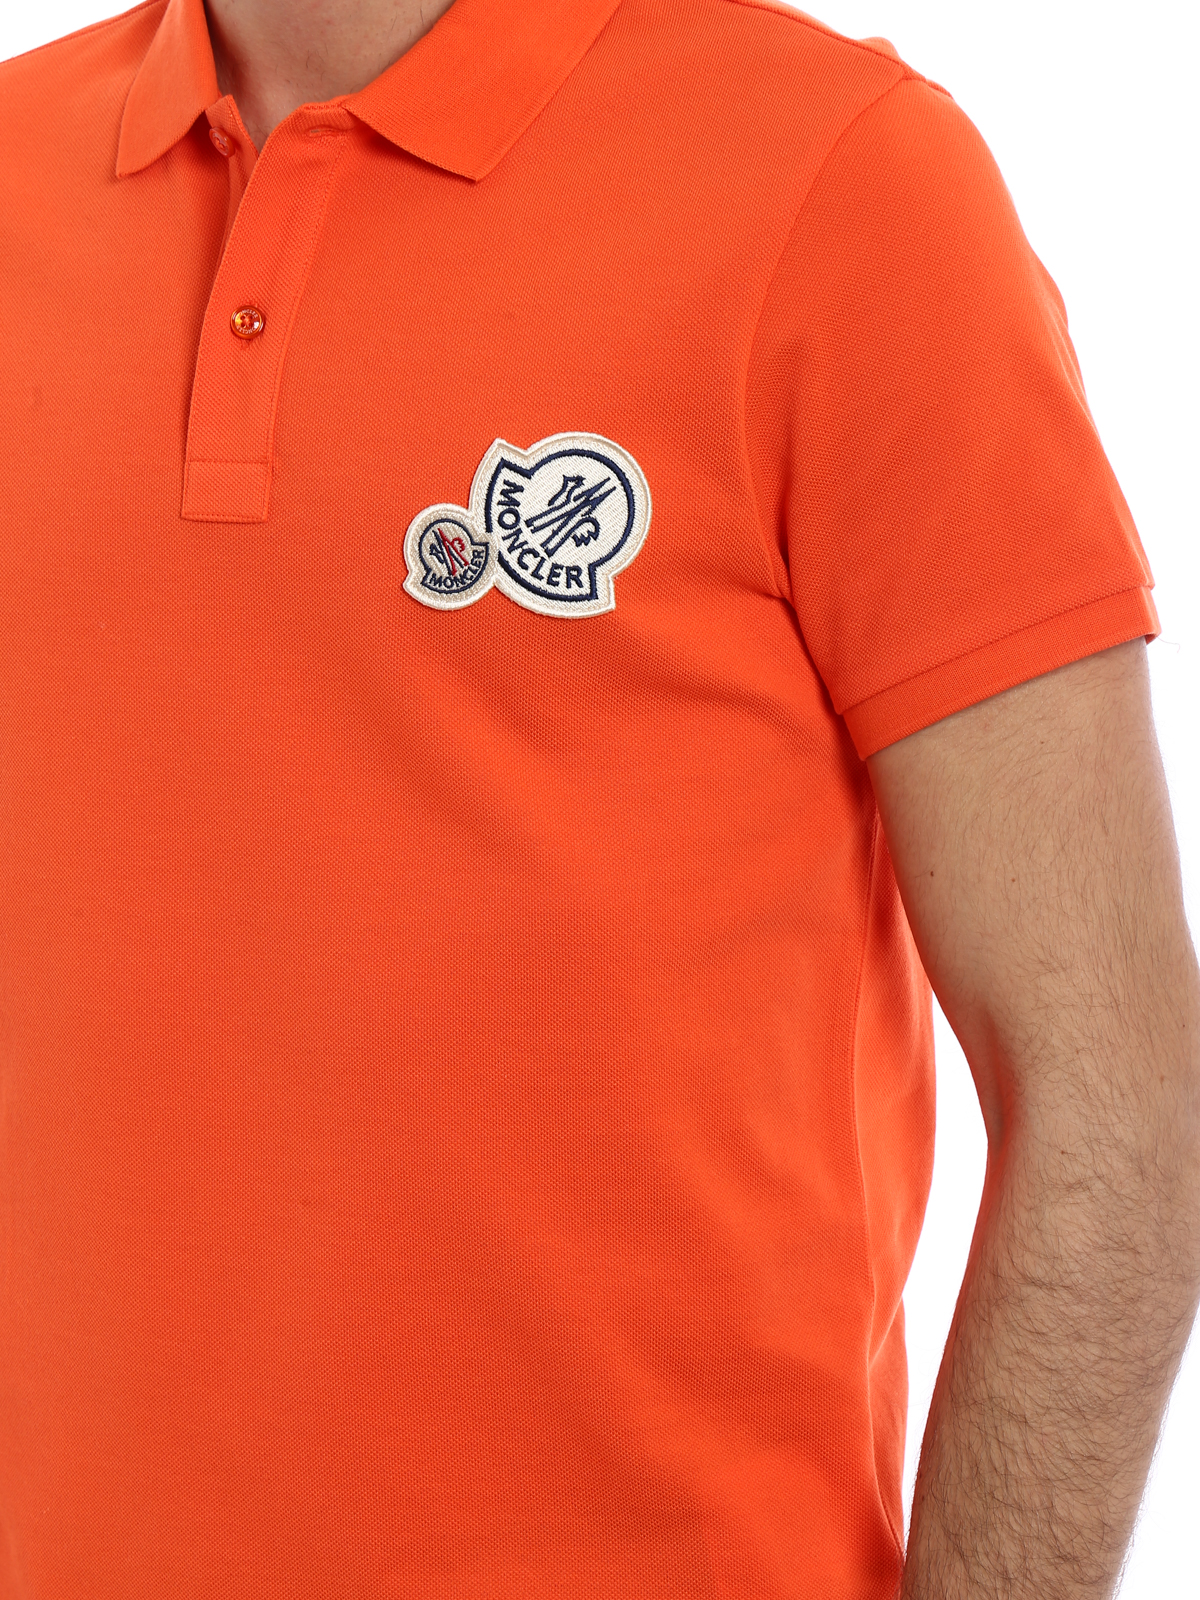 662b5ac57abd Moncler - Logo chest patch orange polo shirt - polo shirts - D1 091 ...